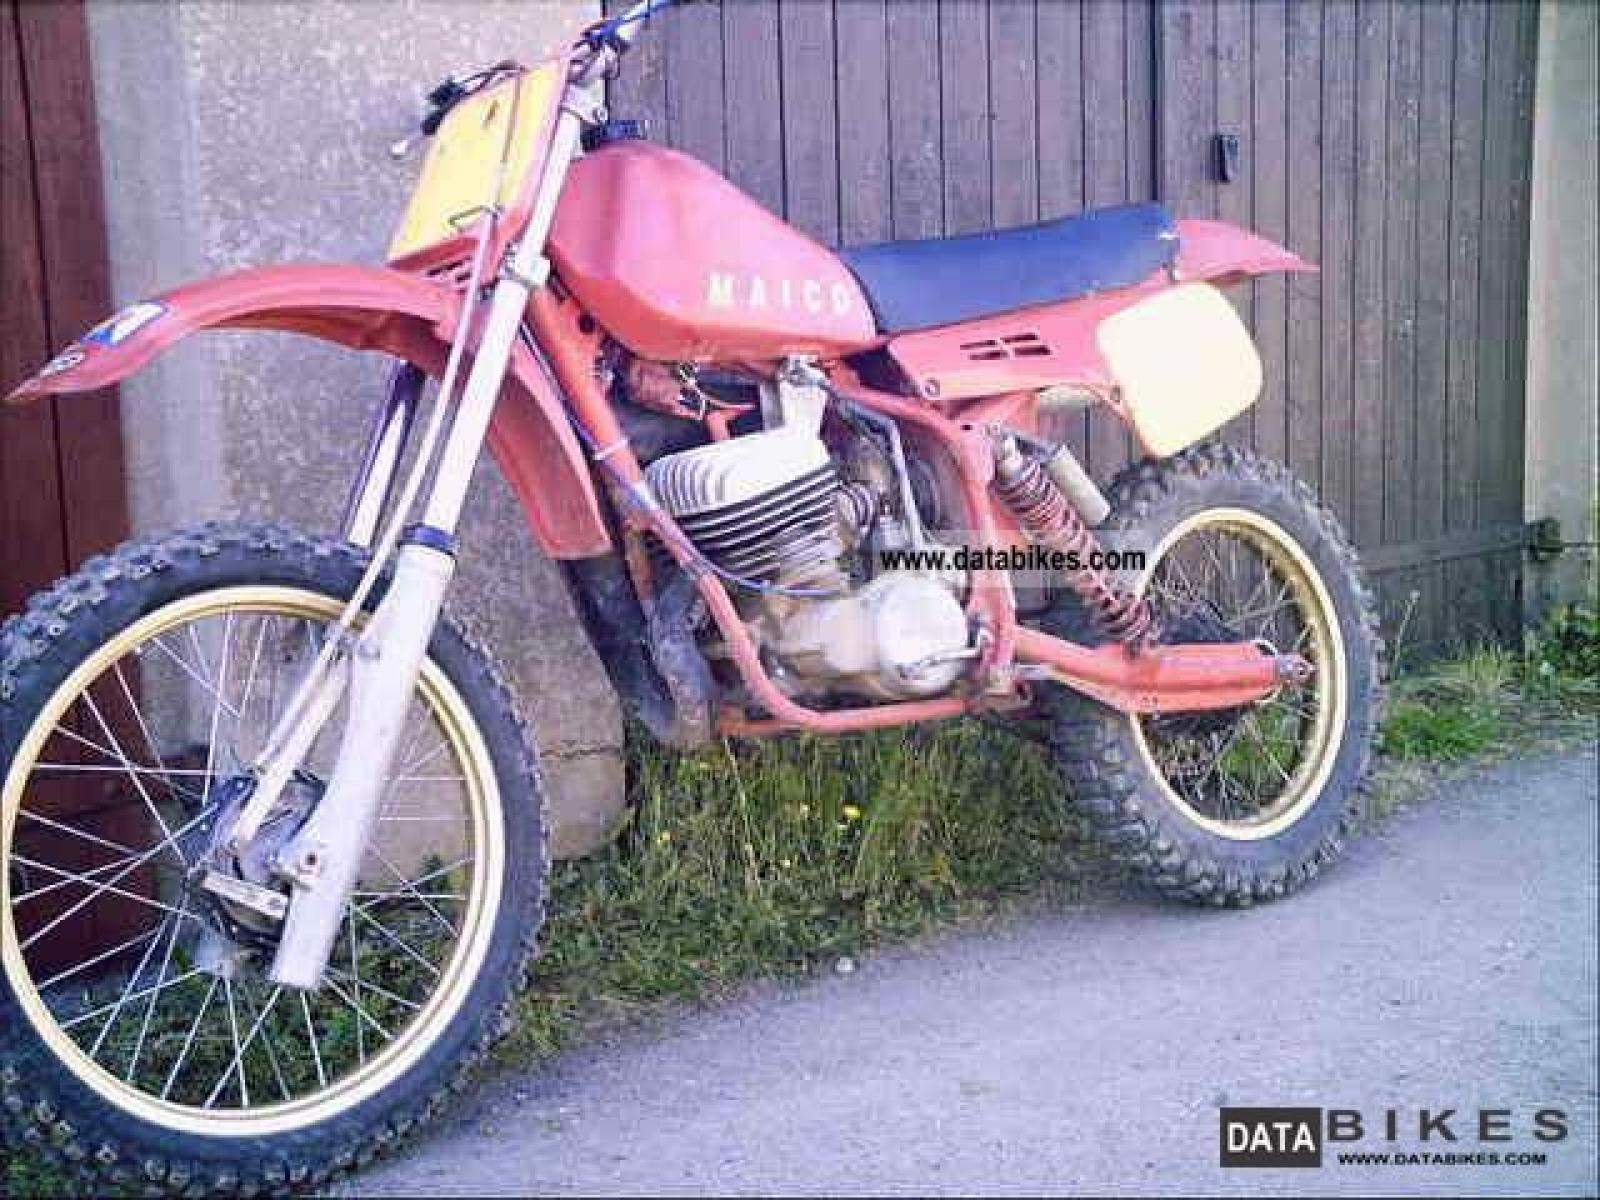 Maico MD 250 WK 1983 images #103723